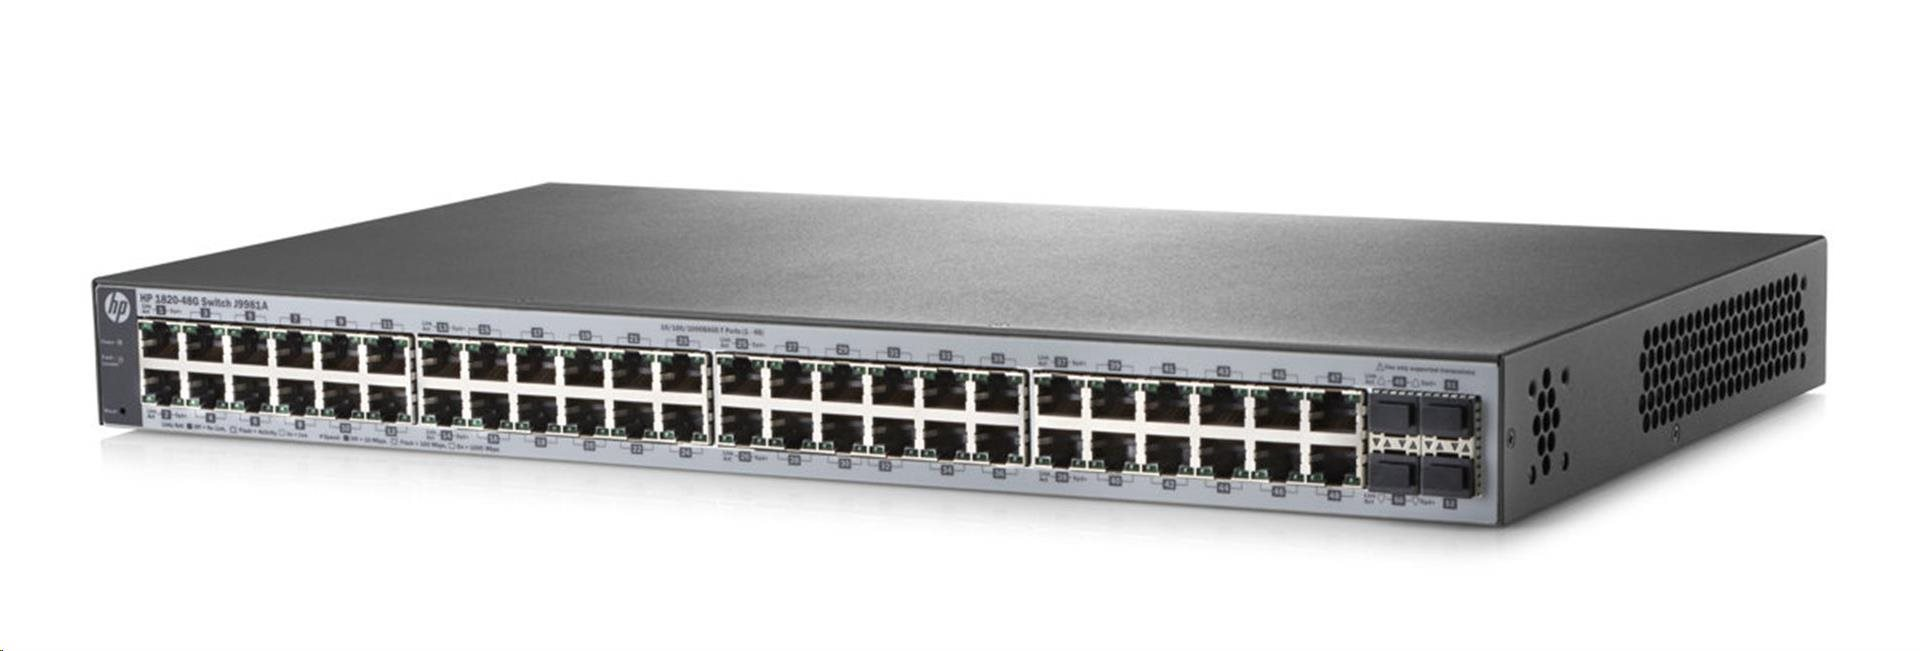 HPE 1820 48G Switch (J9981A)